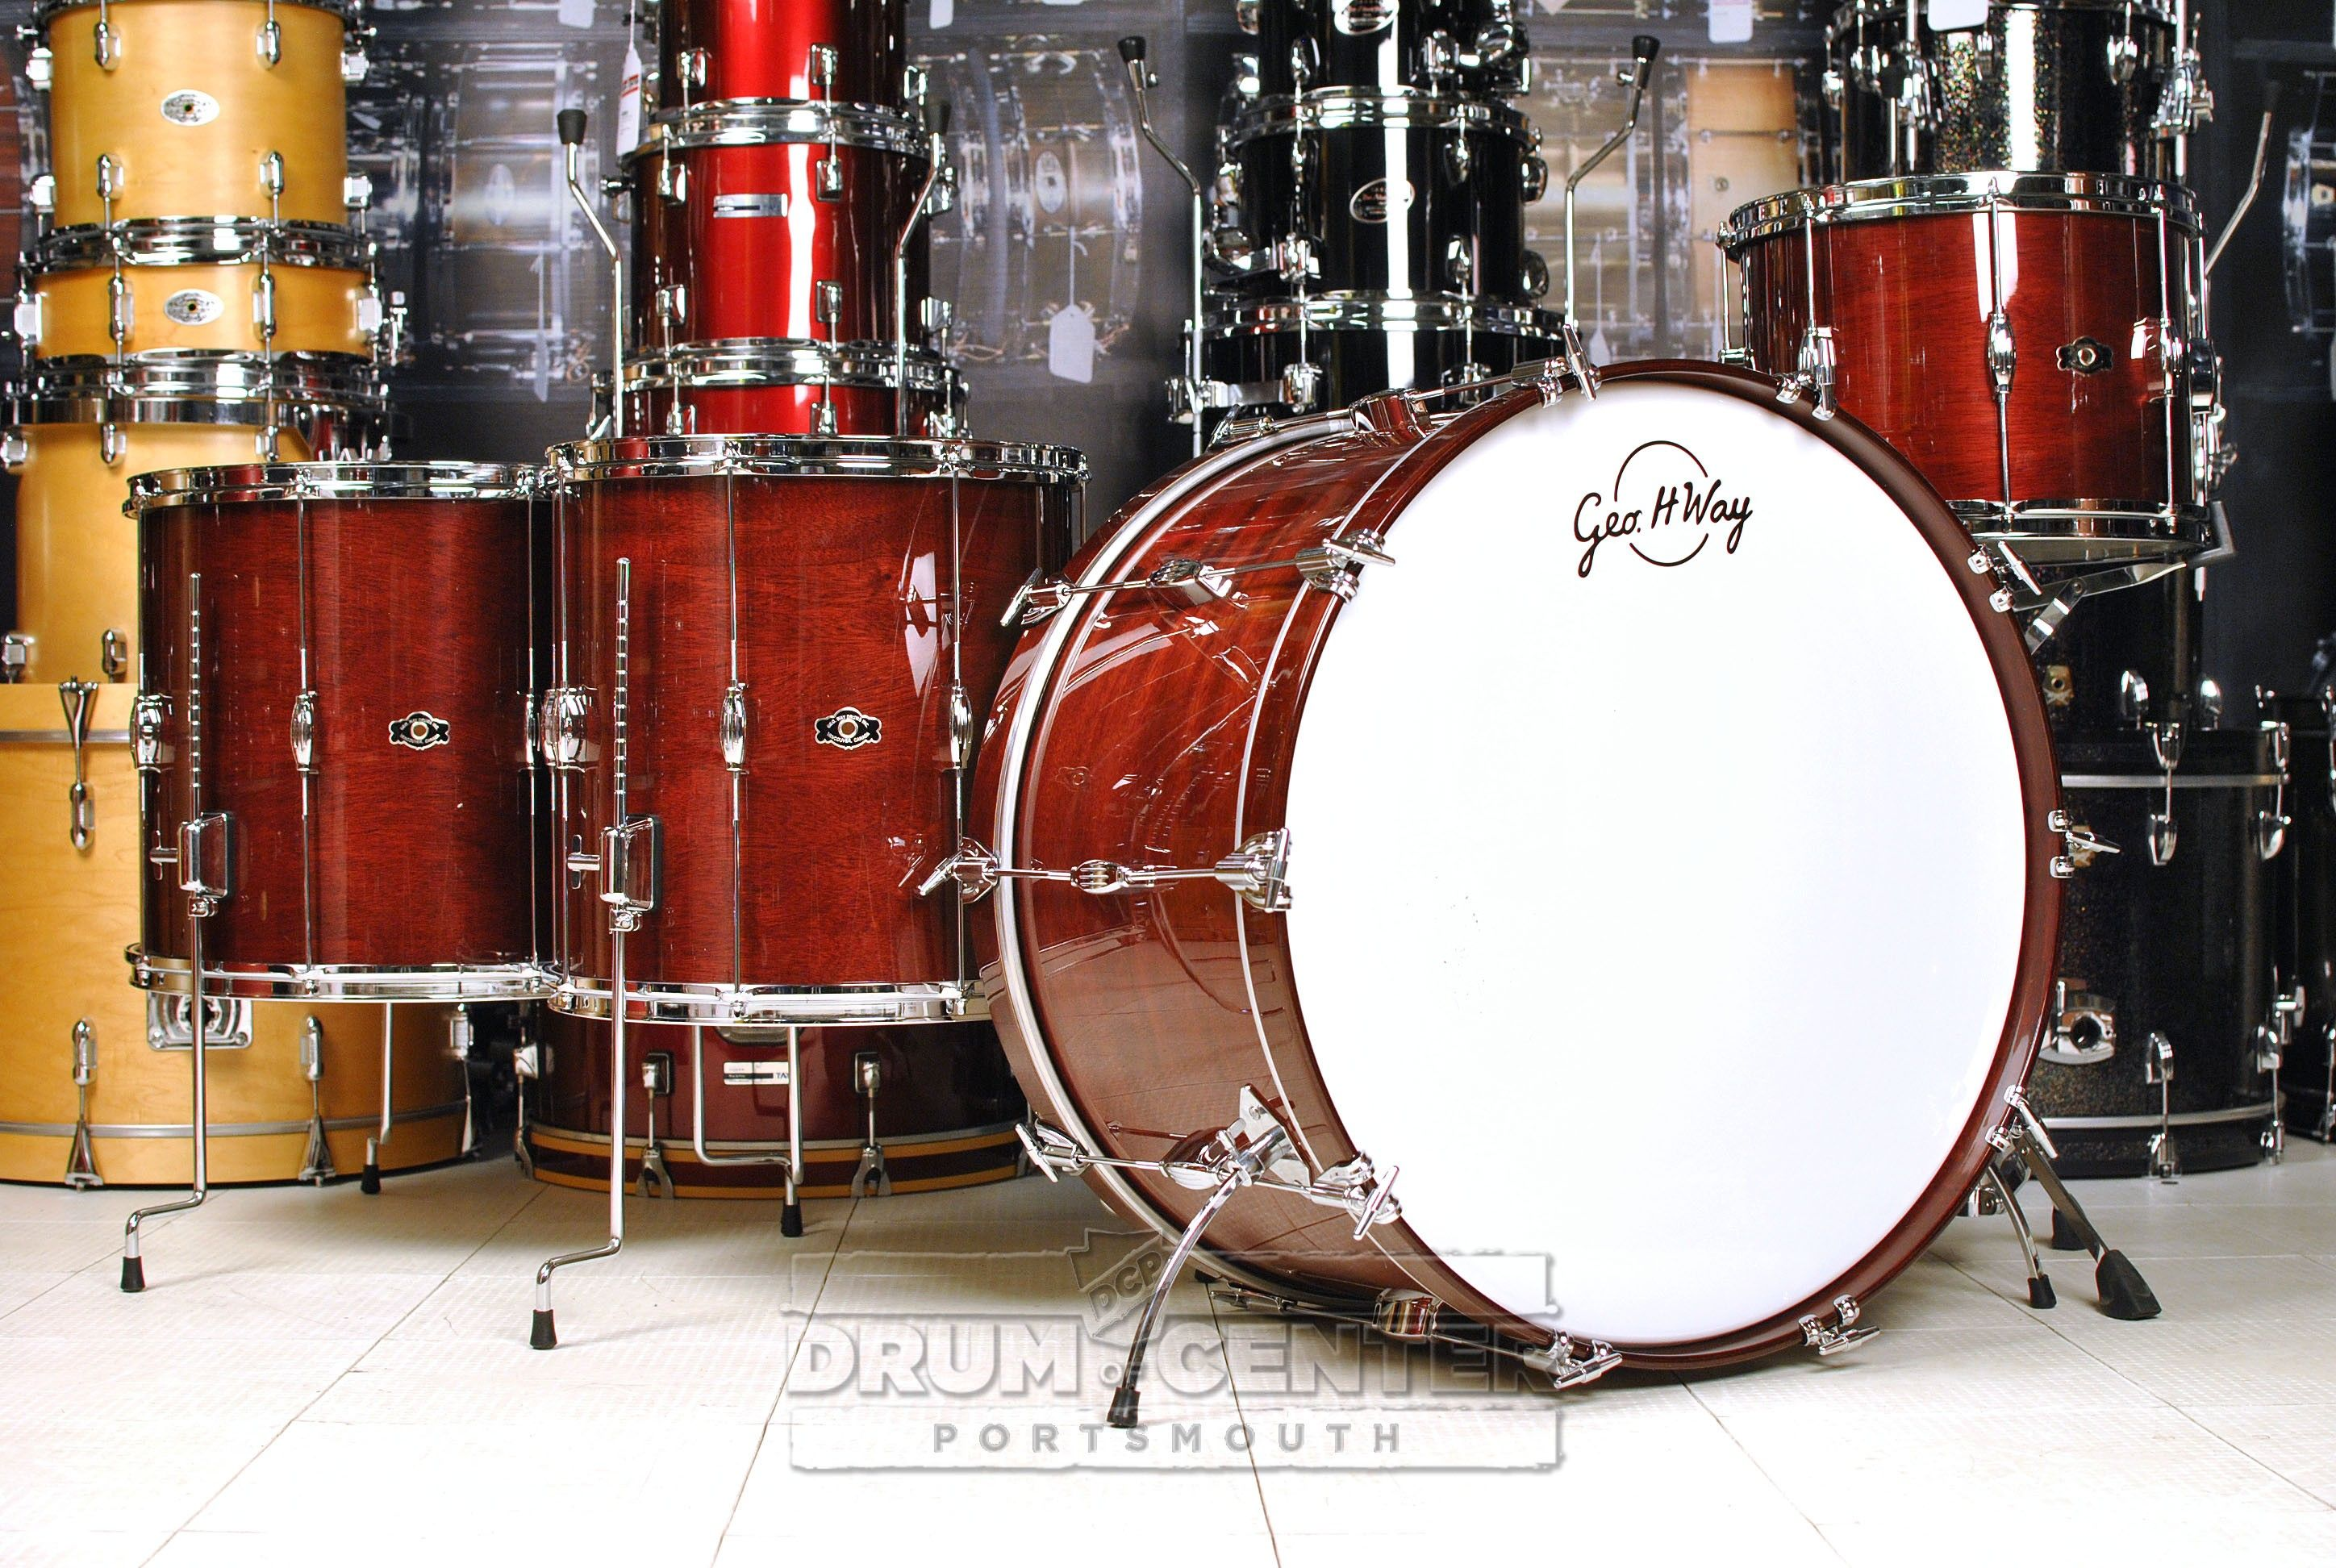 George Way Tradition Mahogany Drum Set 26 13 14 16 18 Wine Red Gloss Drums Drum Set Wine Red